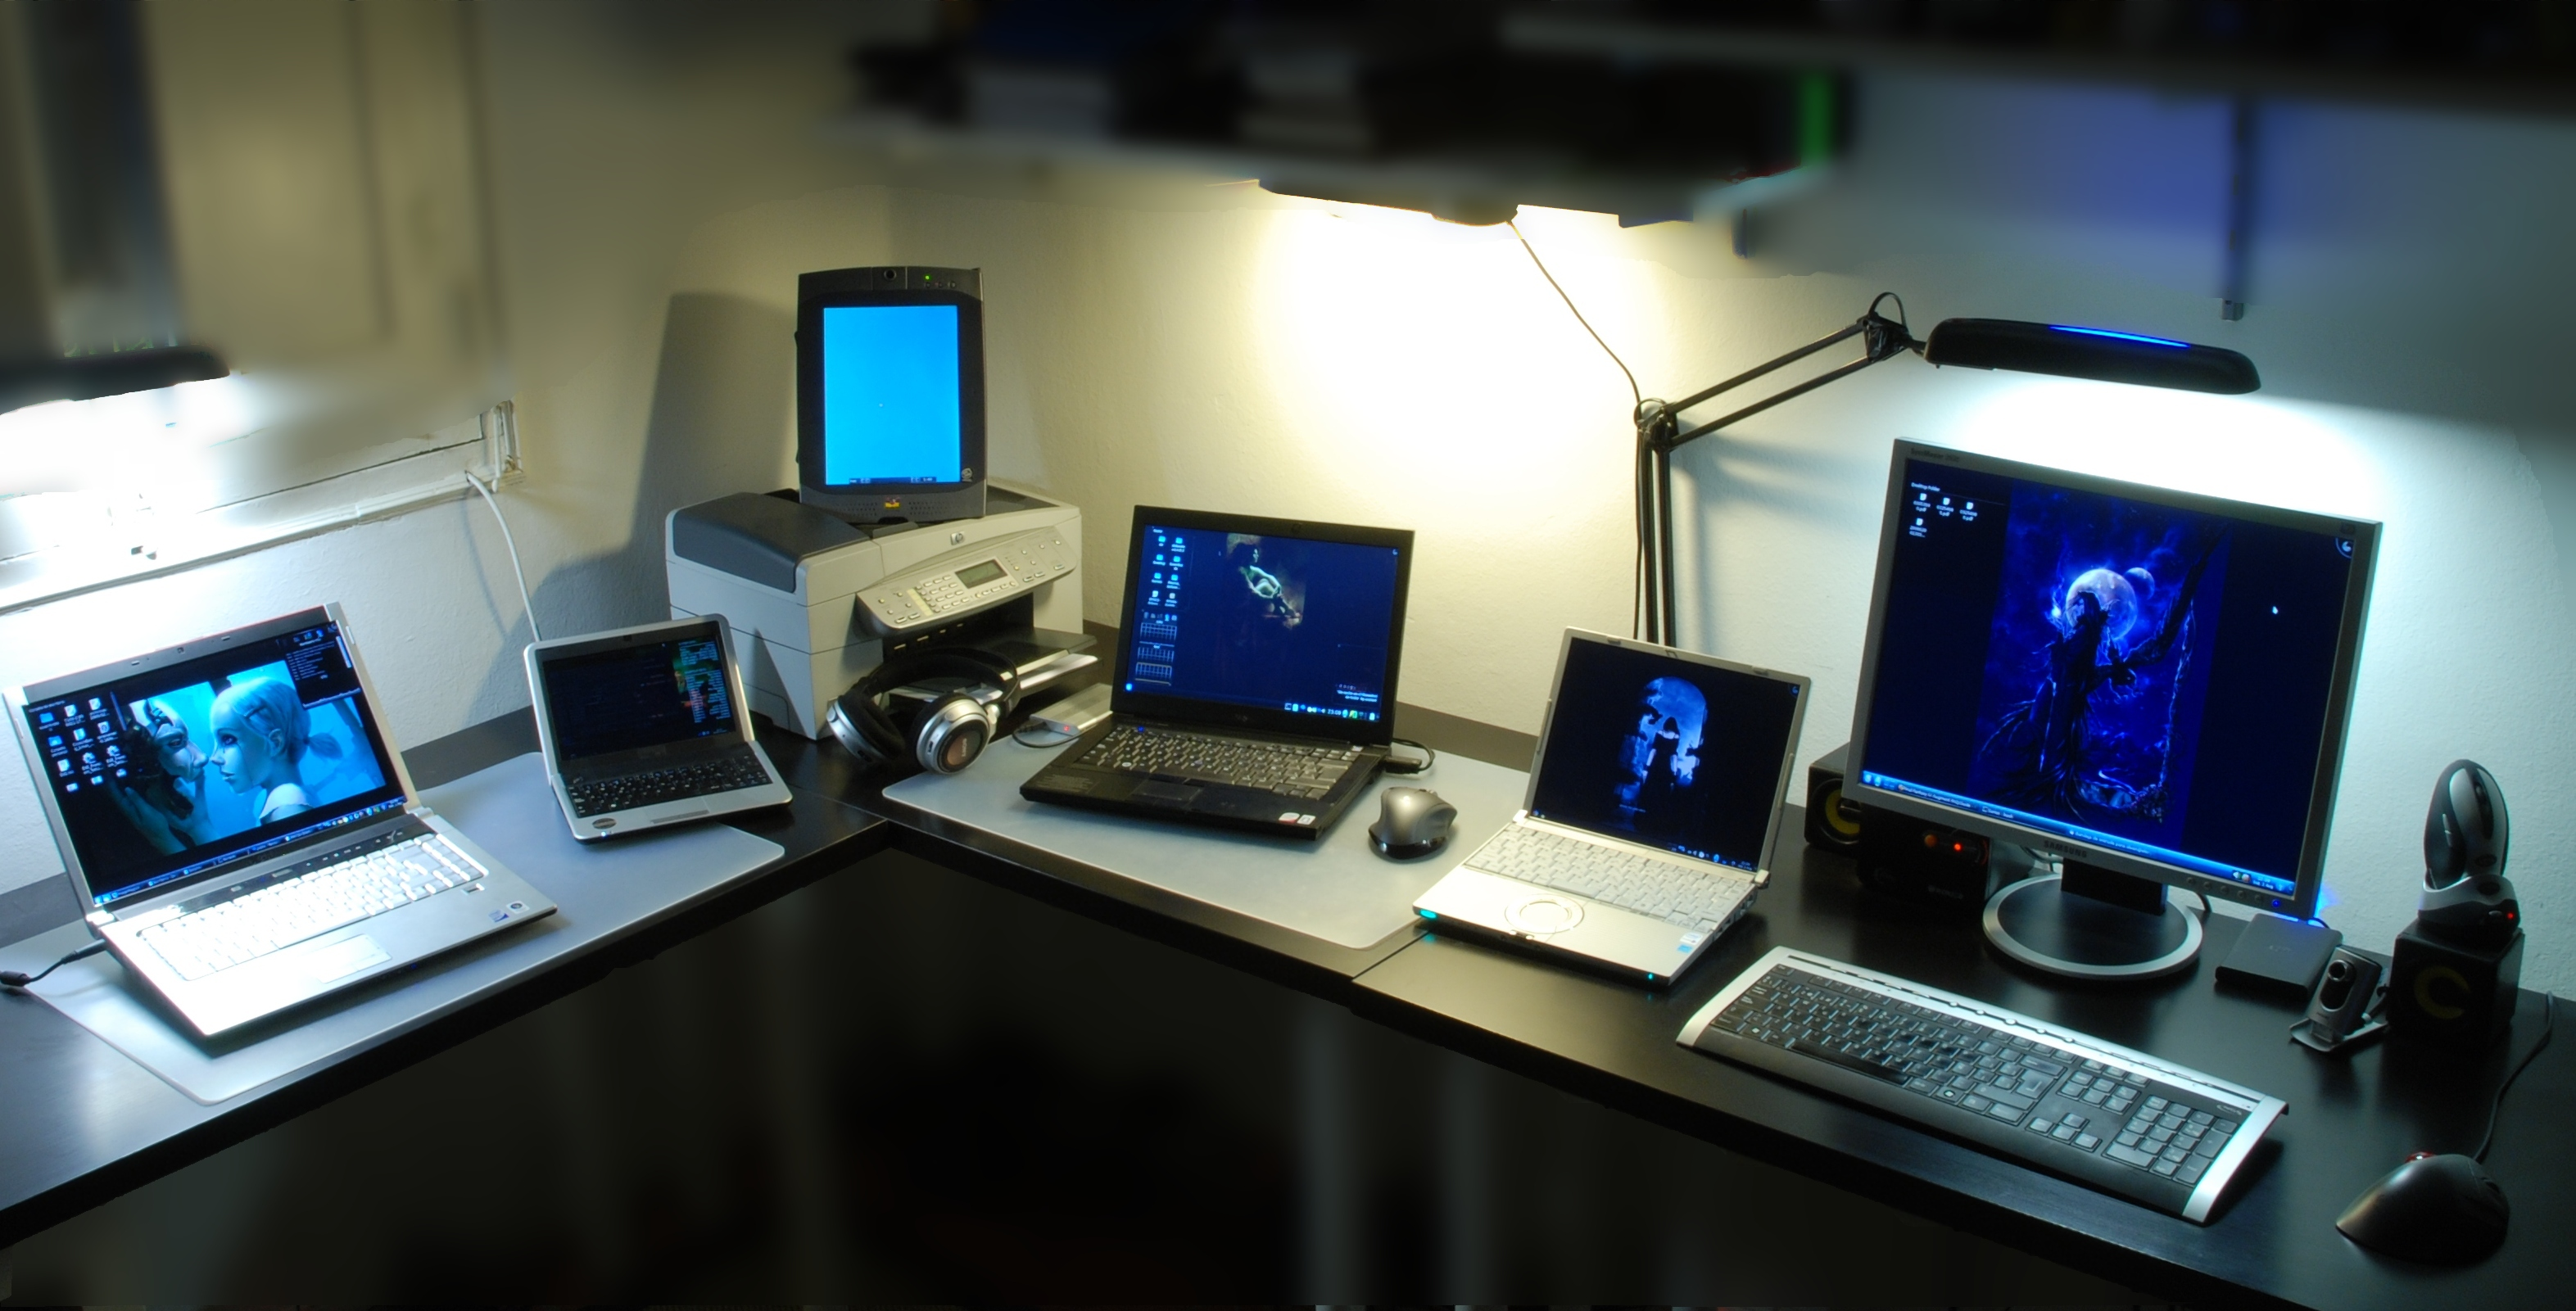 Notebooks, tablets and desktops on display